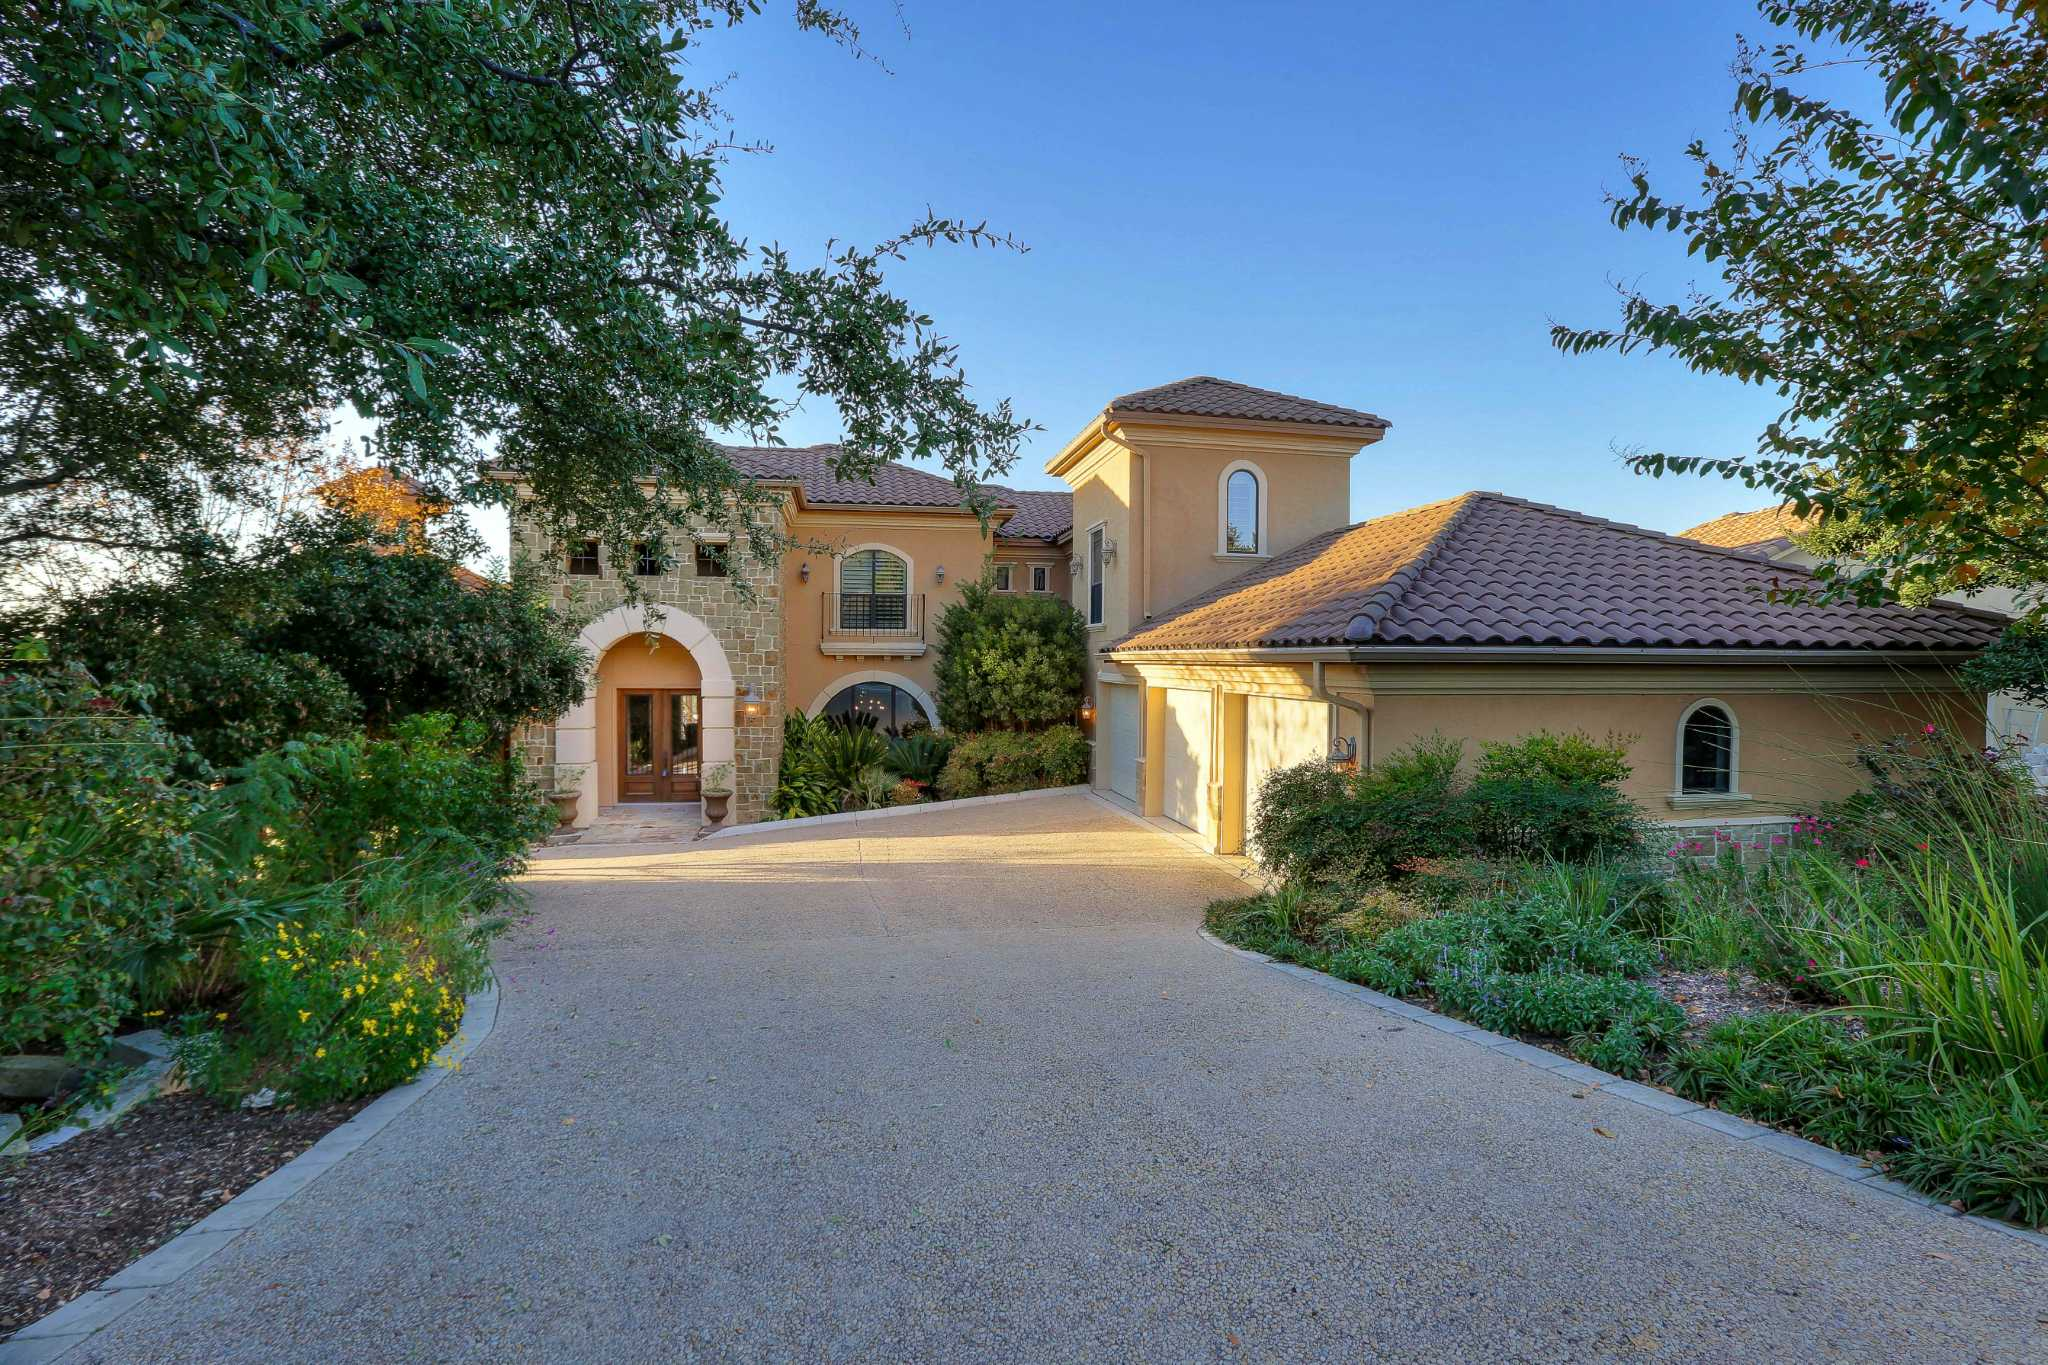 Mansion With Beautiful View Of Stone Oak Hits San Antonio Market For $1.1  Million   San Antonio Express News